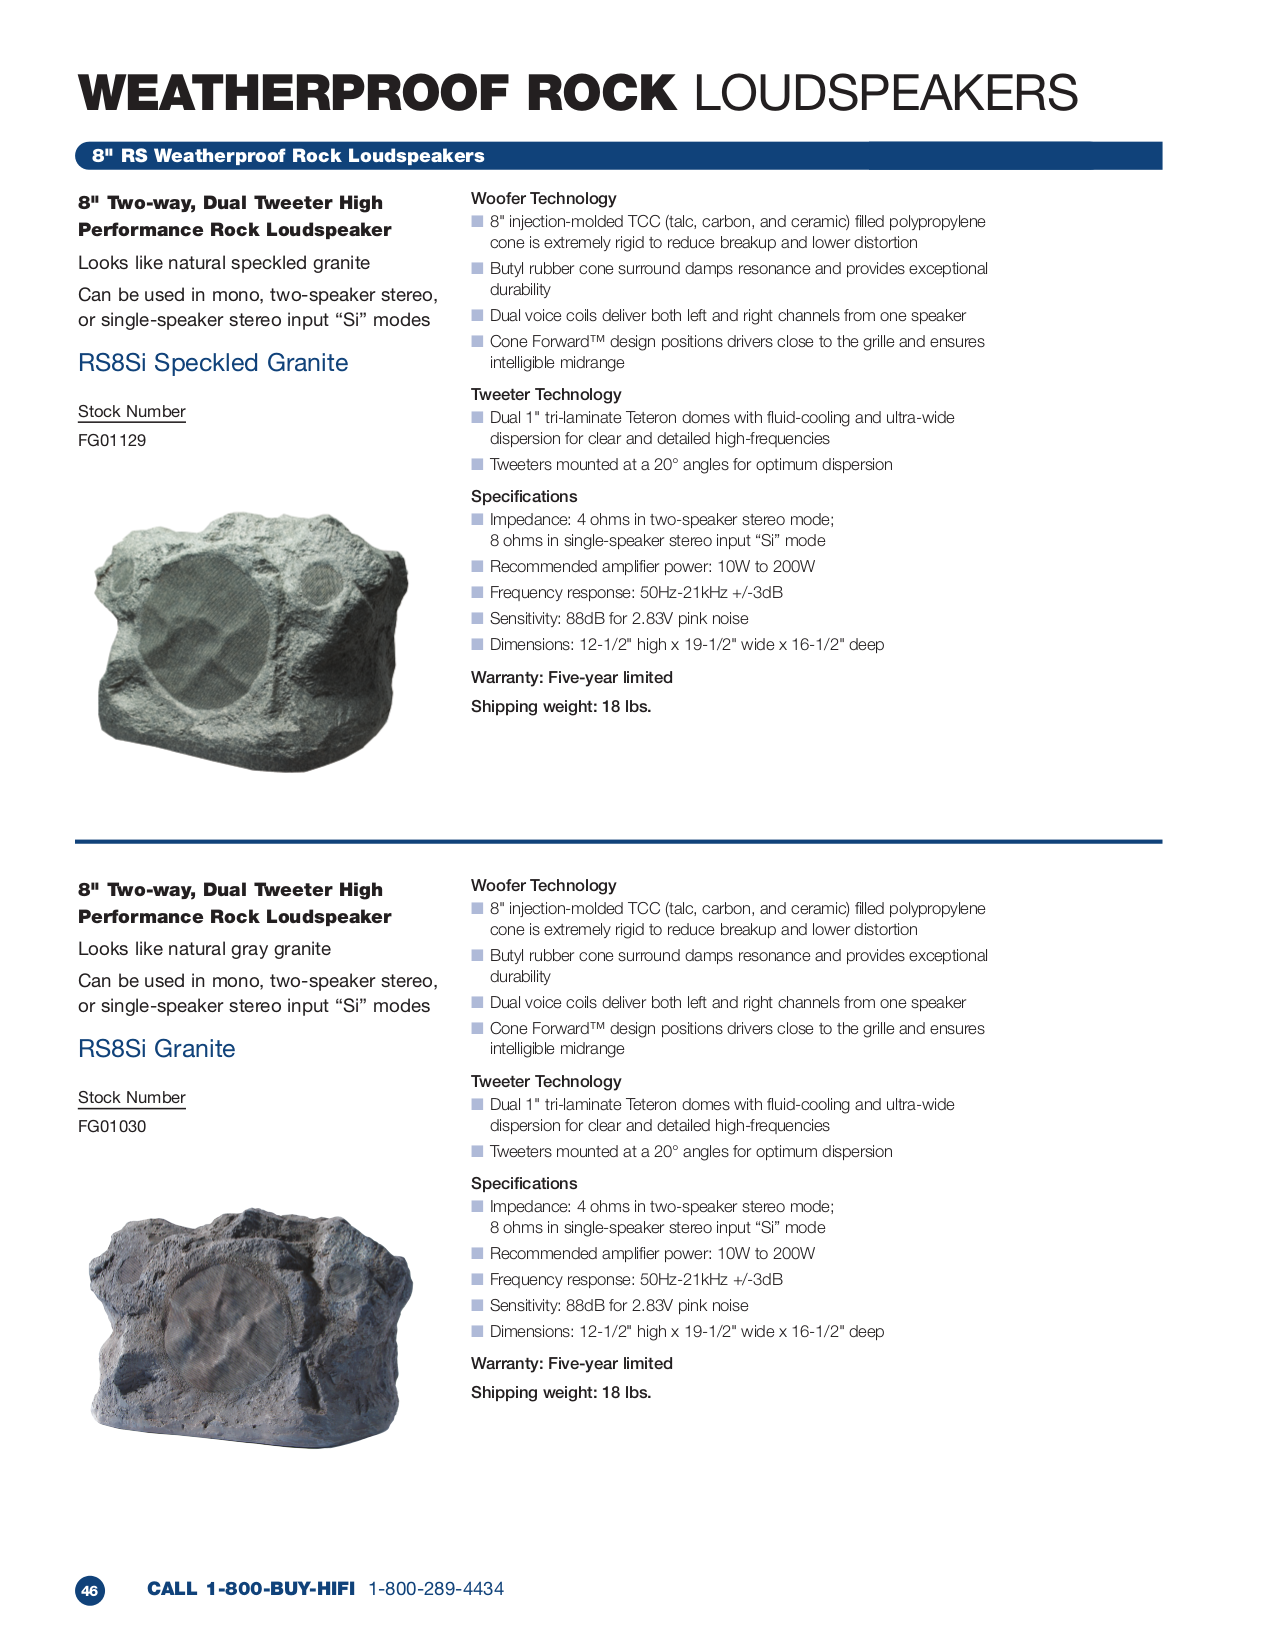 pdf for Niles Speaker RS6 Speckled Granite manual